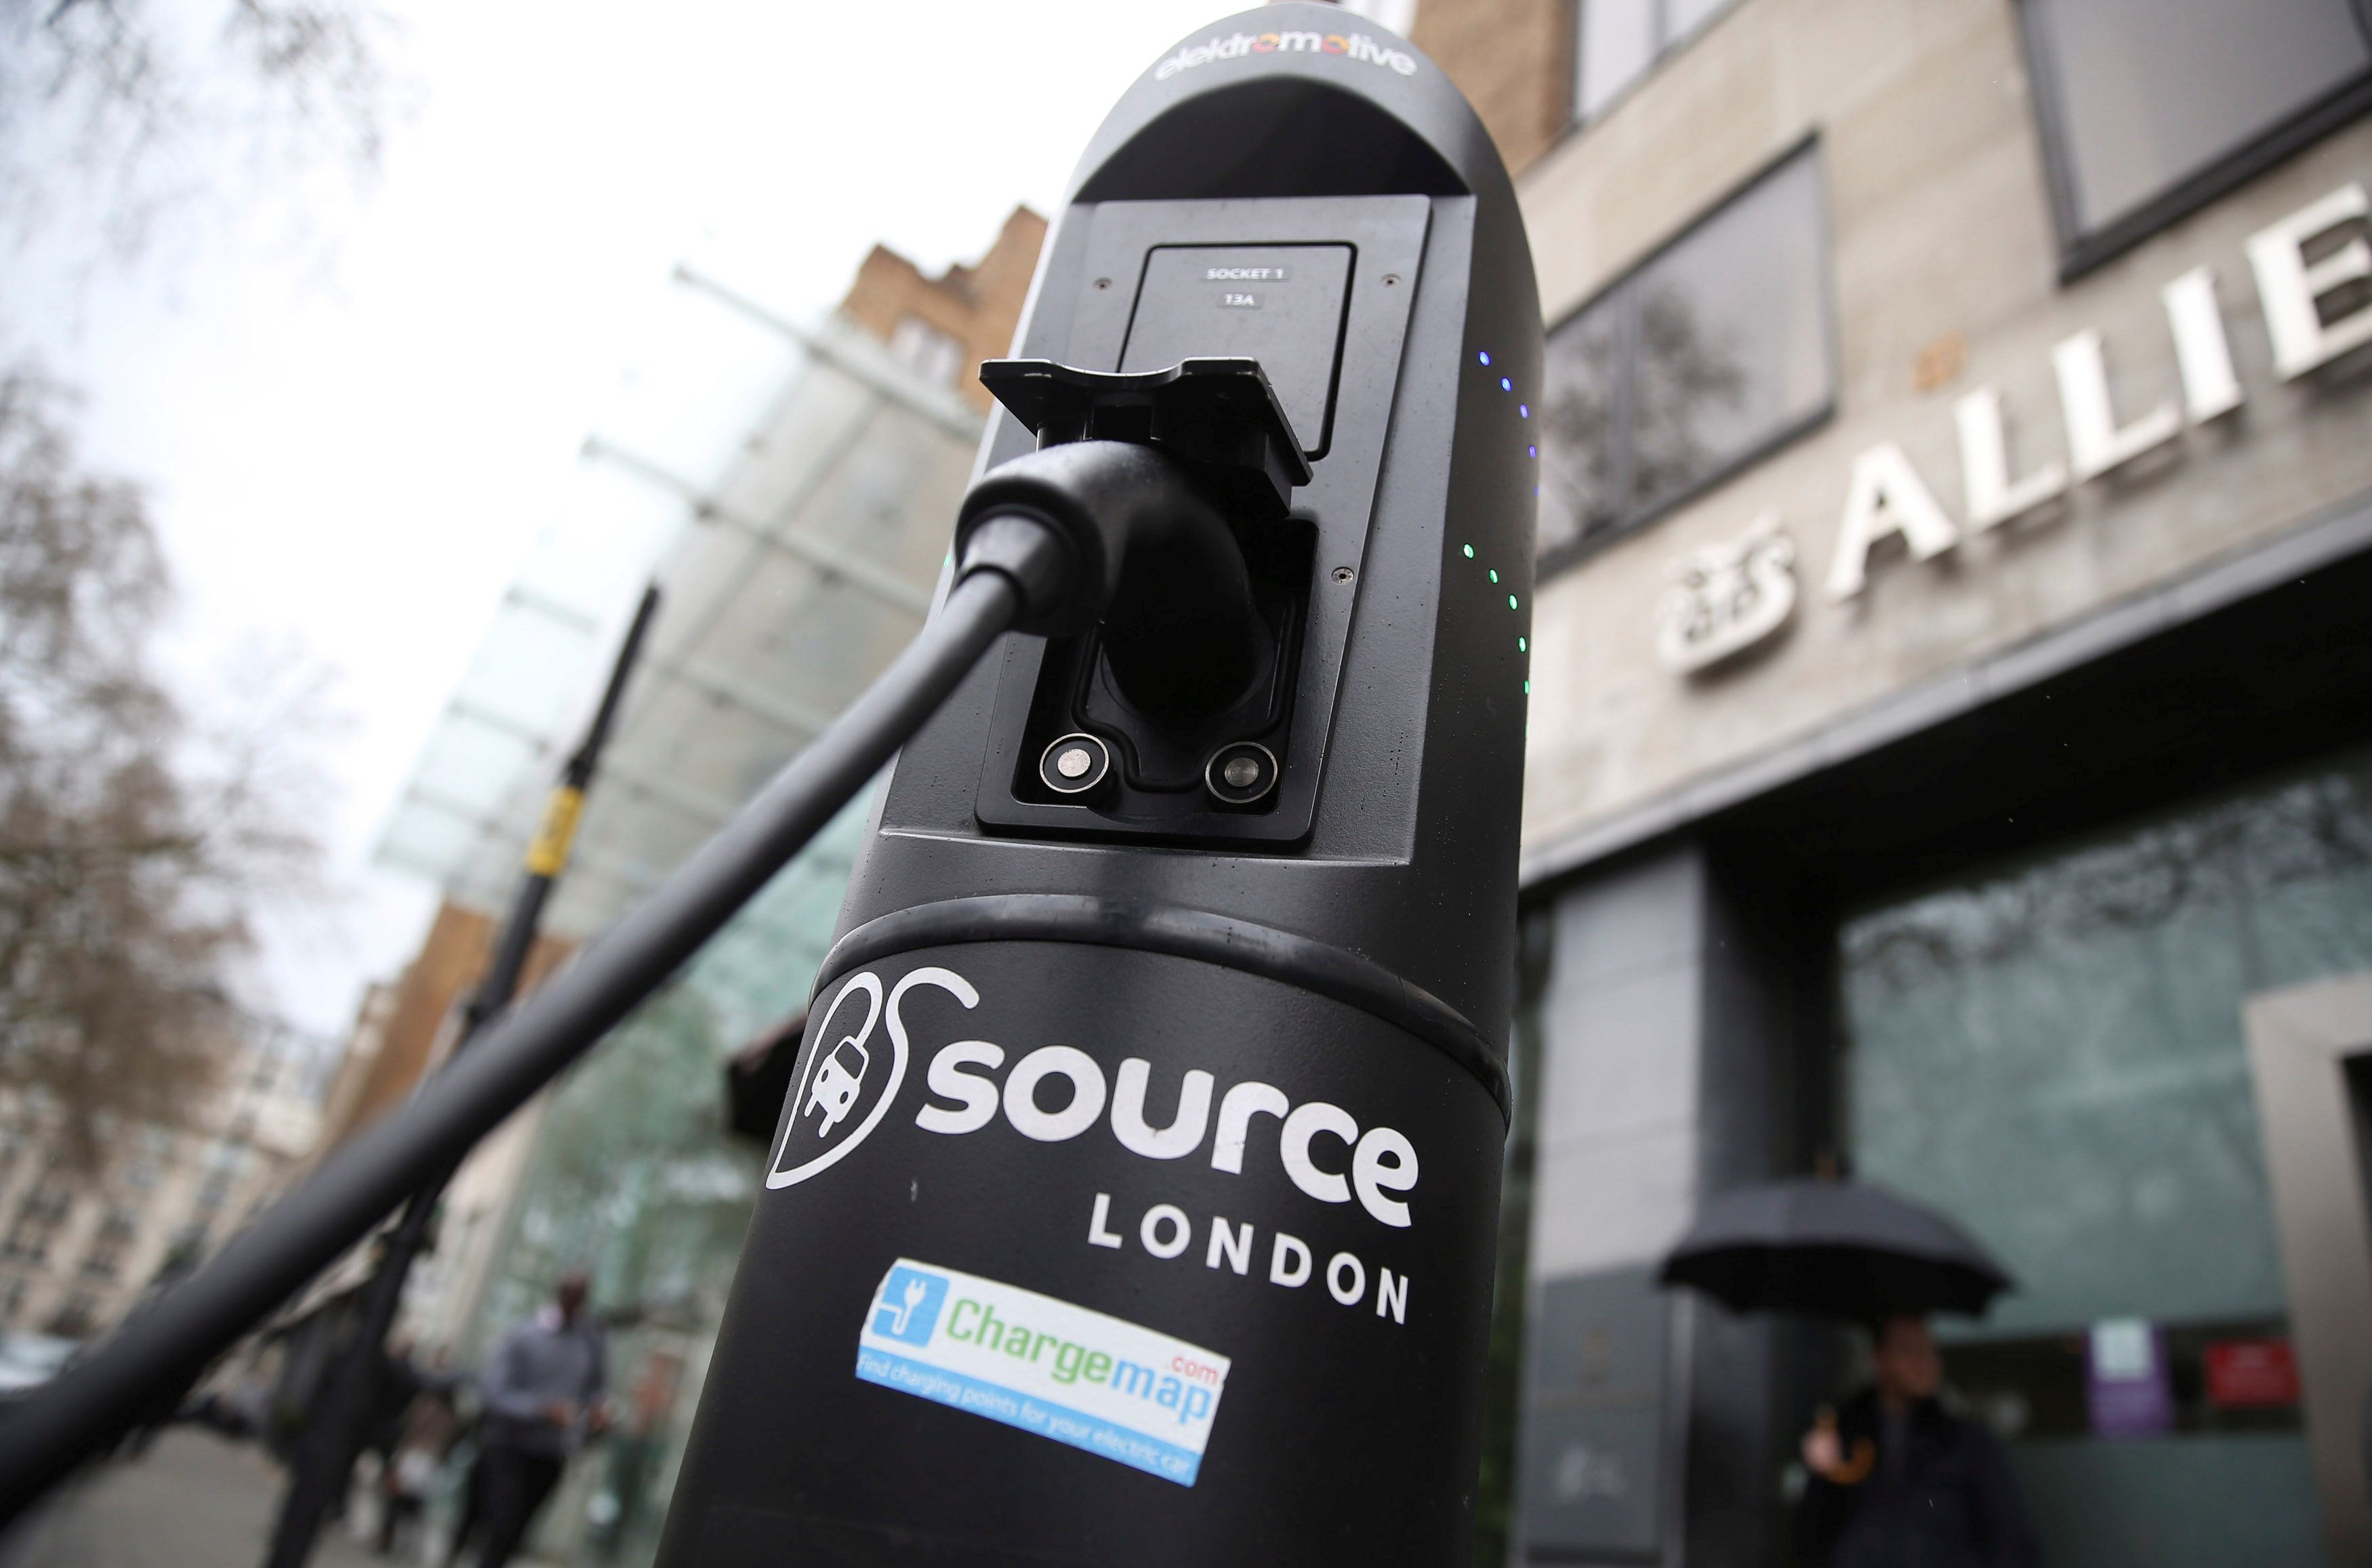 FILE PHOTO - An electric car is plugged into a charging point in London, Britain in this April 7, 2016 file photo. REUTERS/Neil Hall/File Photo